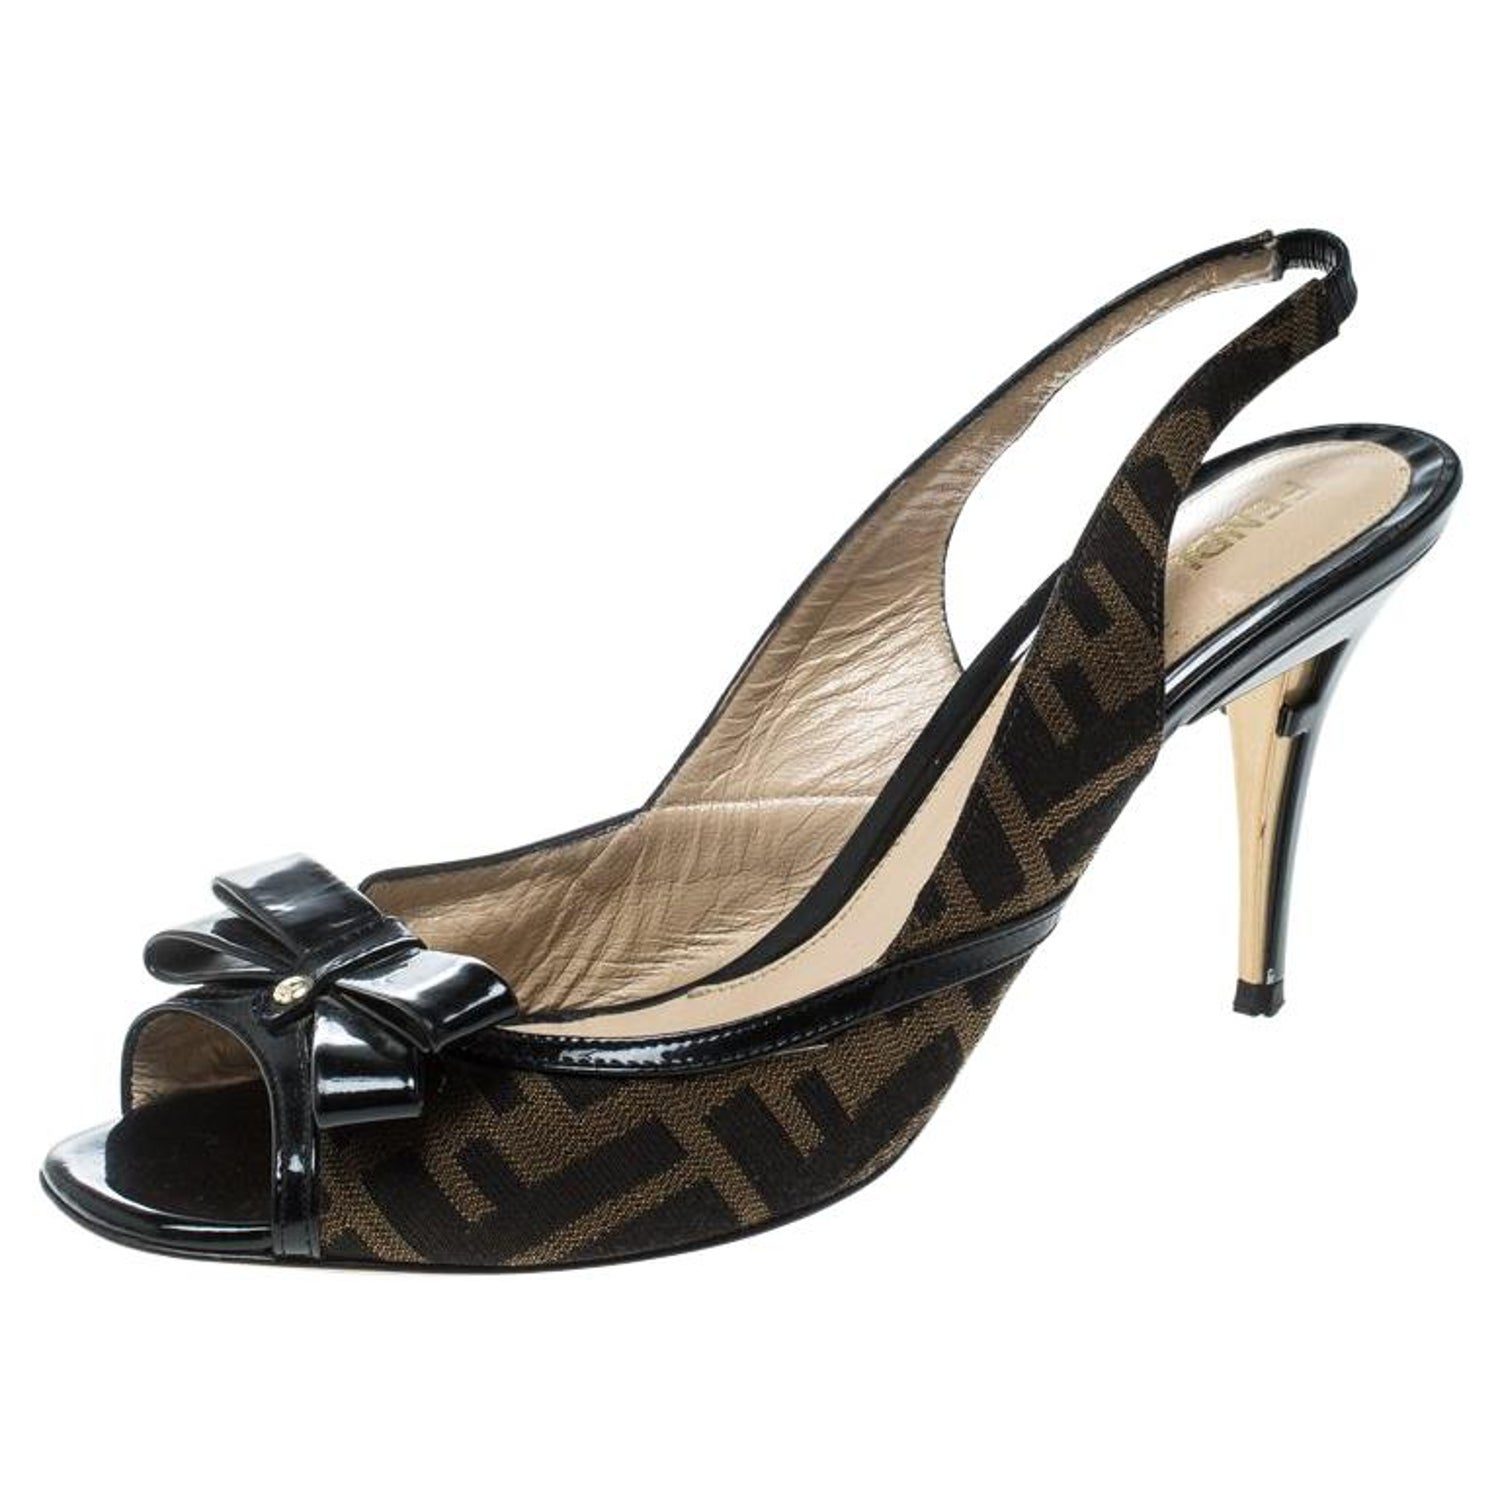 cac697c8339 Fendi Brown Zucca Canvas and Black Patent Bow Slingback Sandals Size 39.5